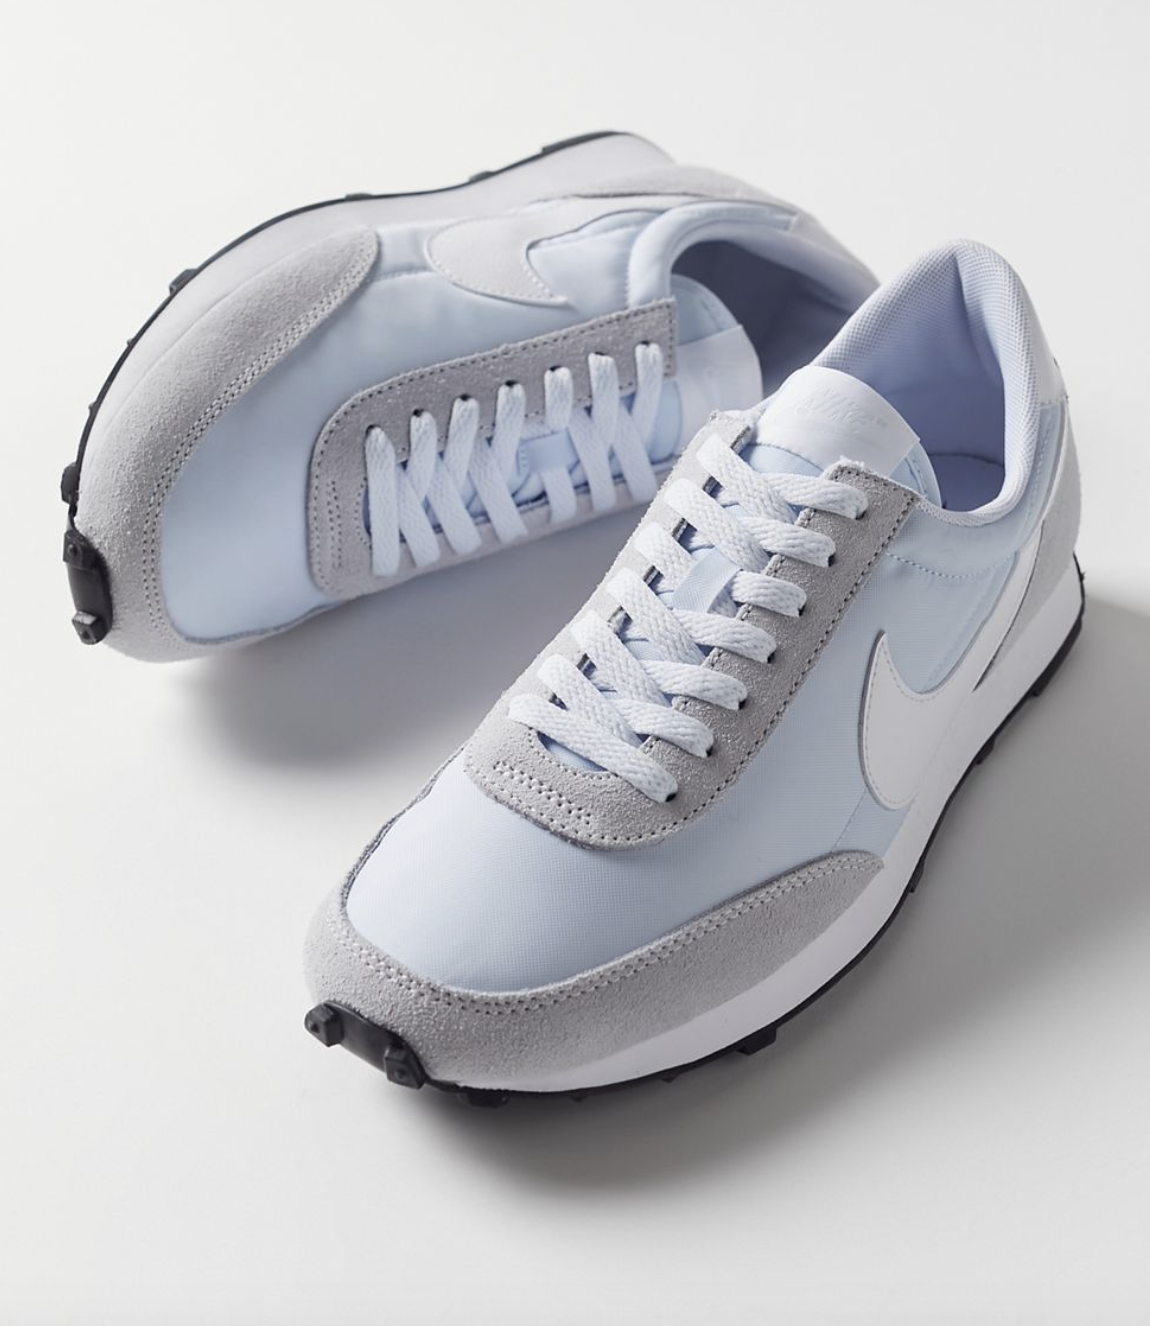 Urban Outfitters: Select Nike on sale!